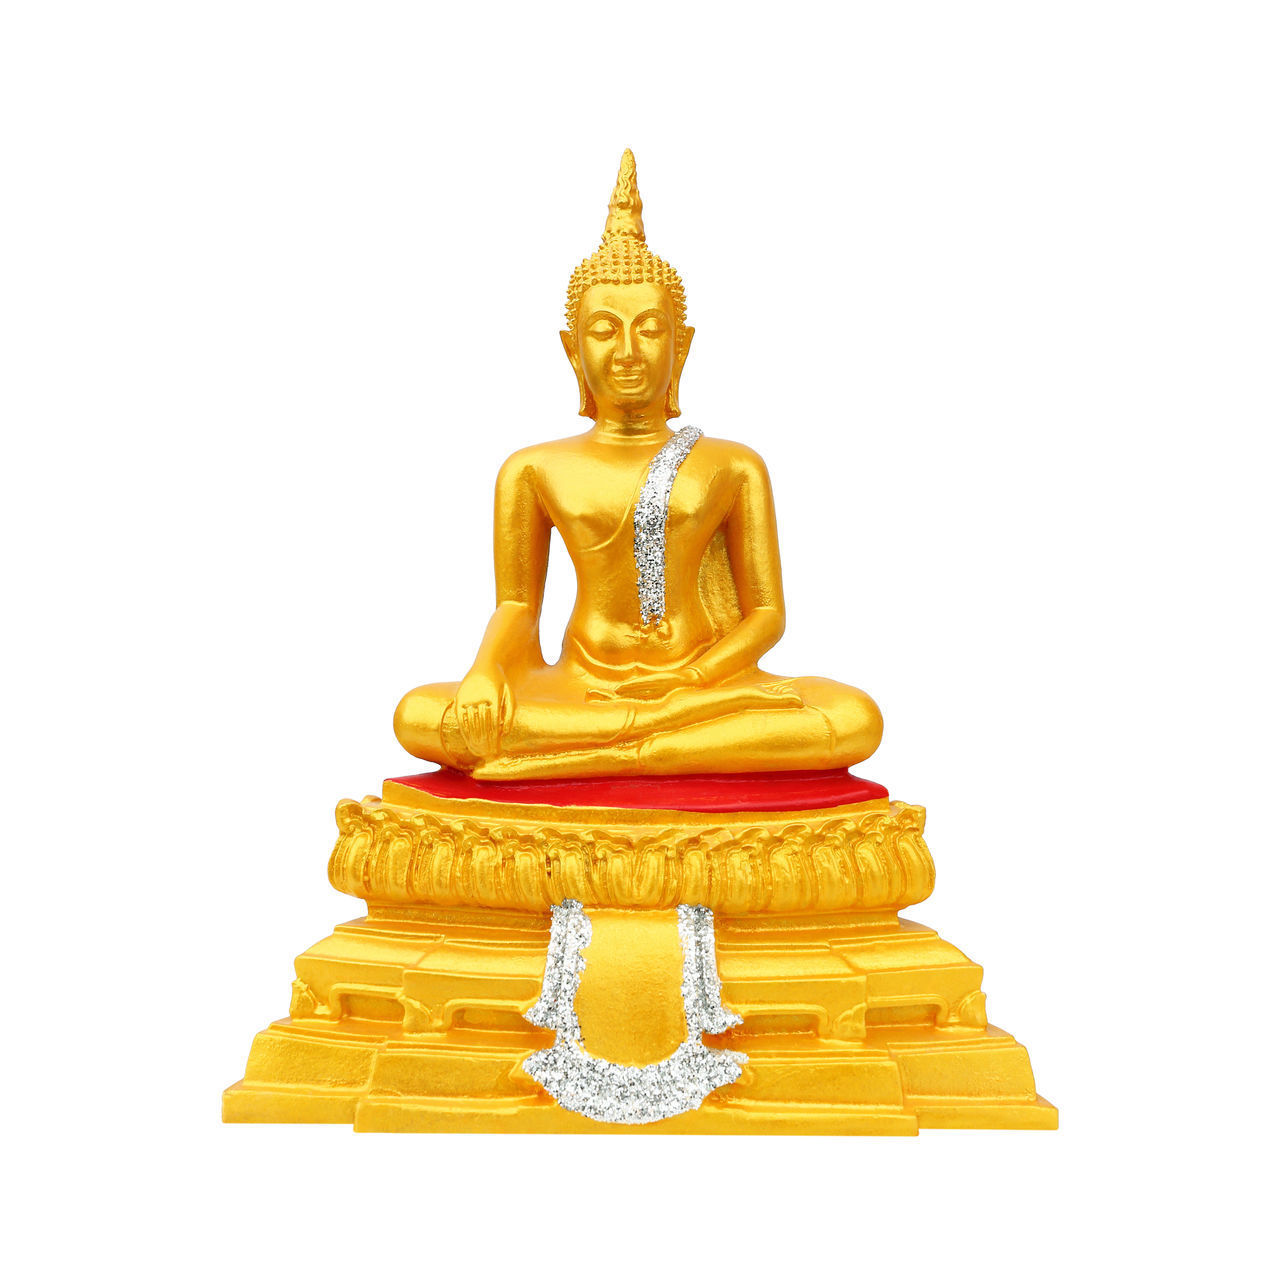 gold colored, religion, belief, sculpture, statue, studio shot, spirituality, no people, place of worship, indoors, art and craft, white background, representation, human representation, male likeness, copy space, yellow, ornate, idol